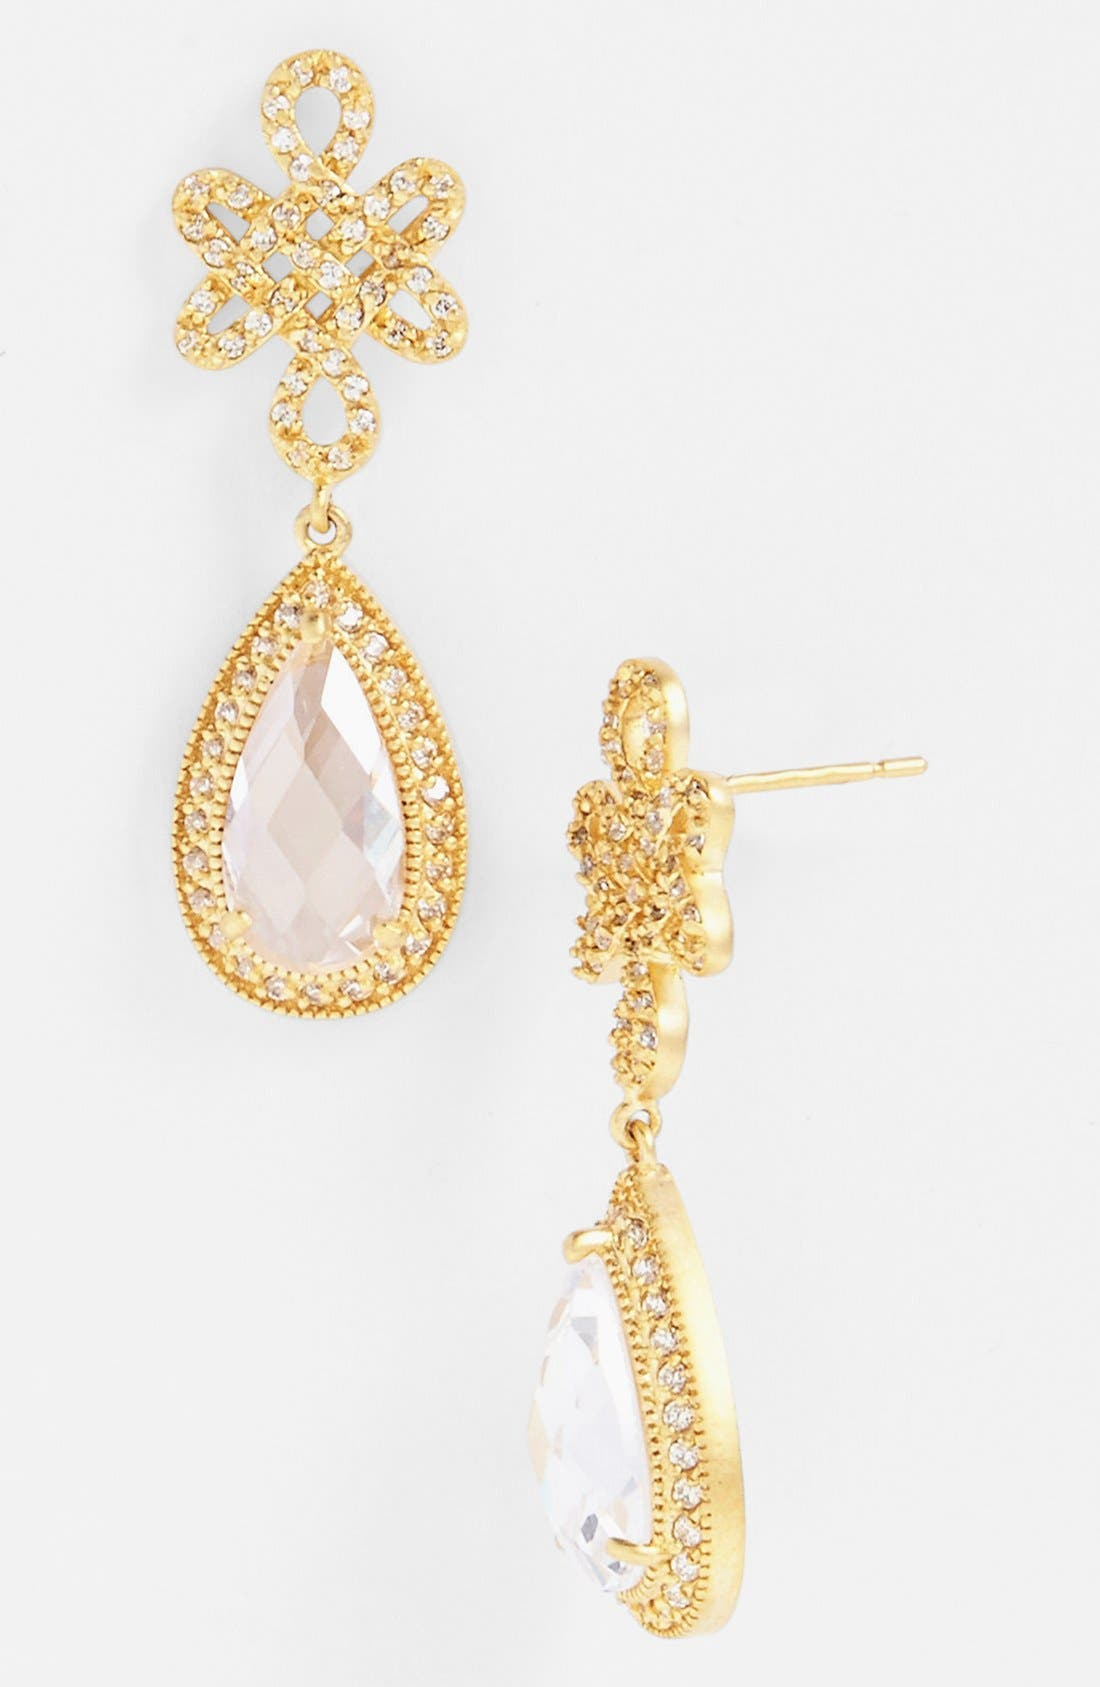 Main Image - FREIDA ROTHMAN 'Gramercy' Love Knot Teardrop Earrings